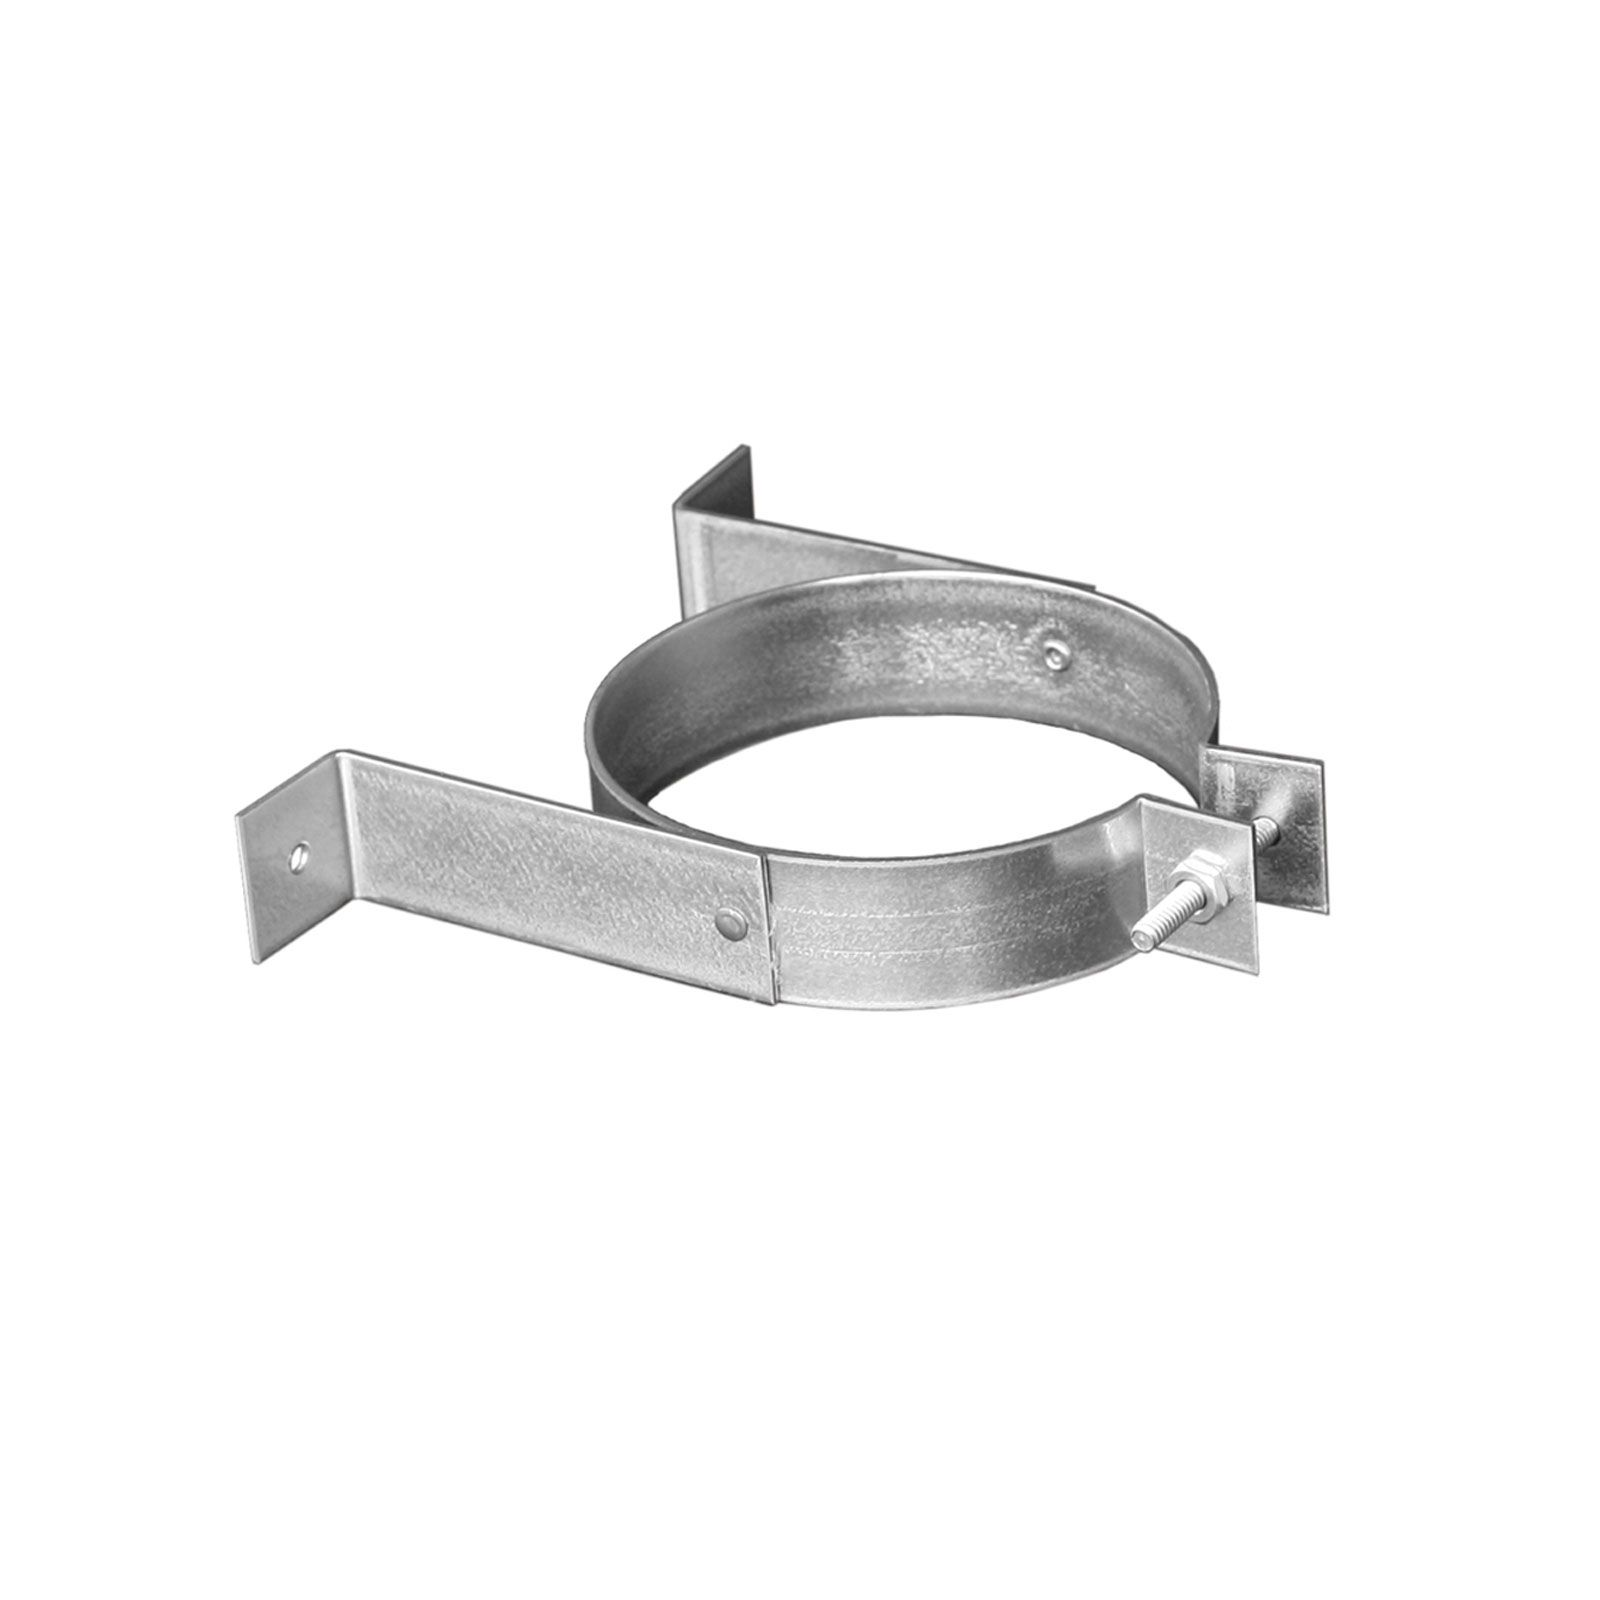 "DuraVent 3GVWS - Aluminum Wall Strap with 3"" Inner Diameter"